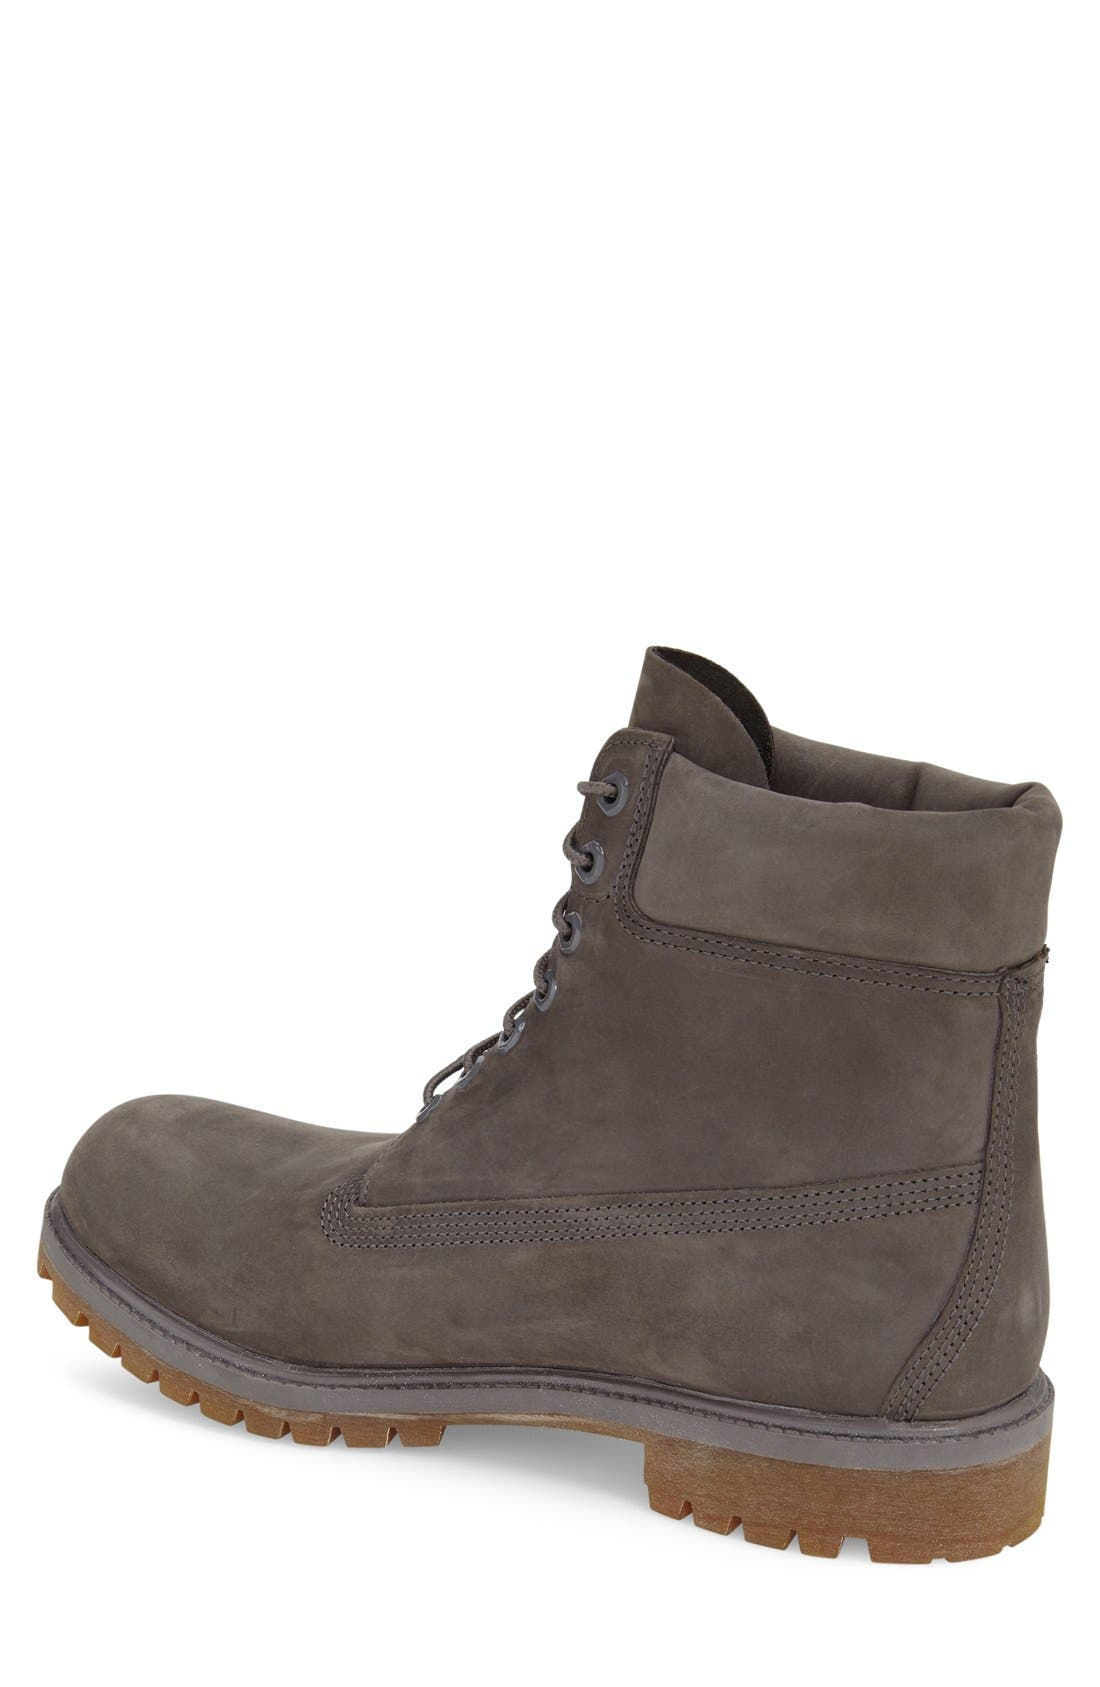 Alternate Image 2  - Timberland 'Monochromatic' Waterproof Plain Toe Boot (Men)